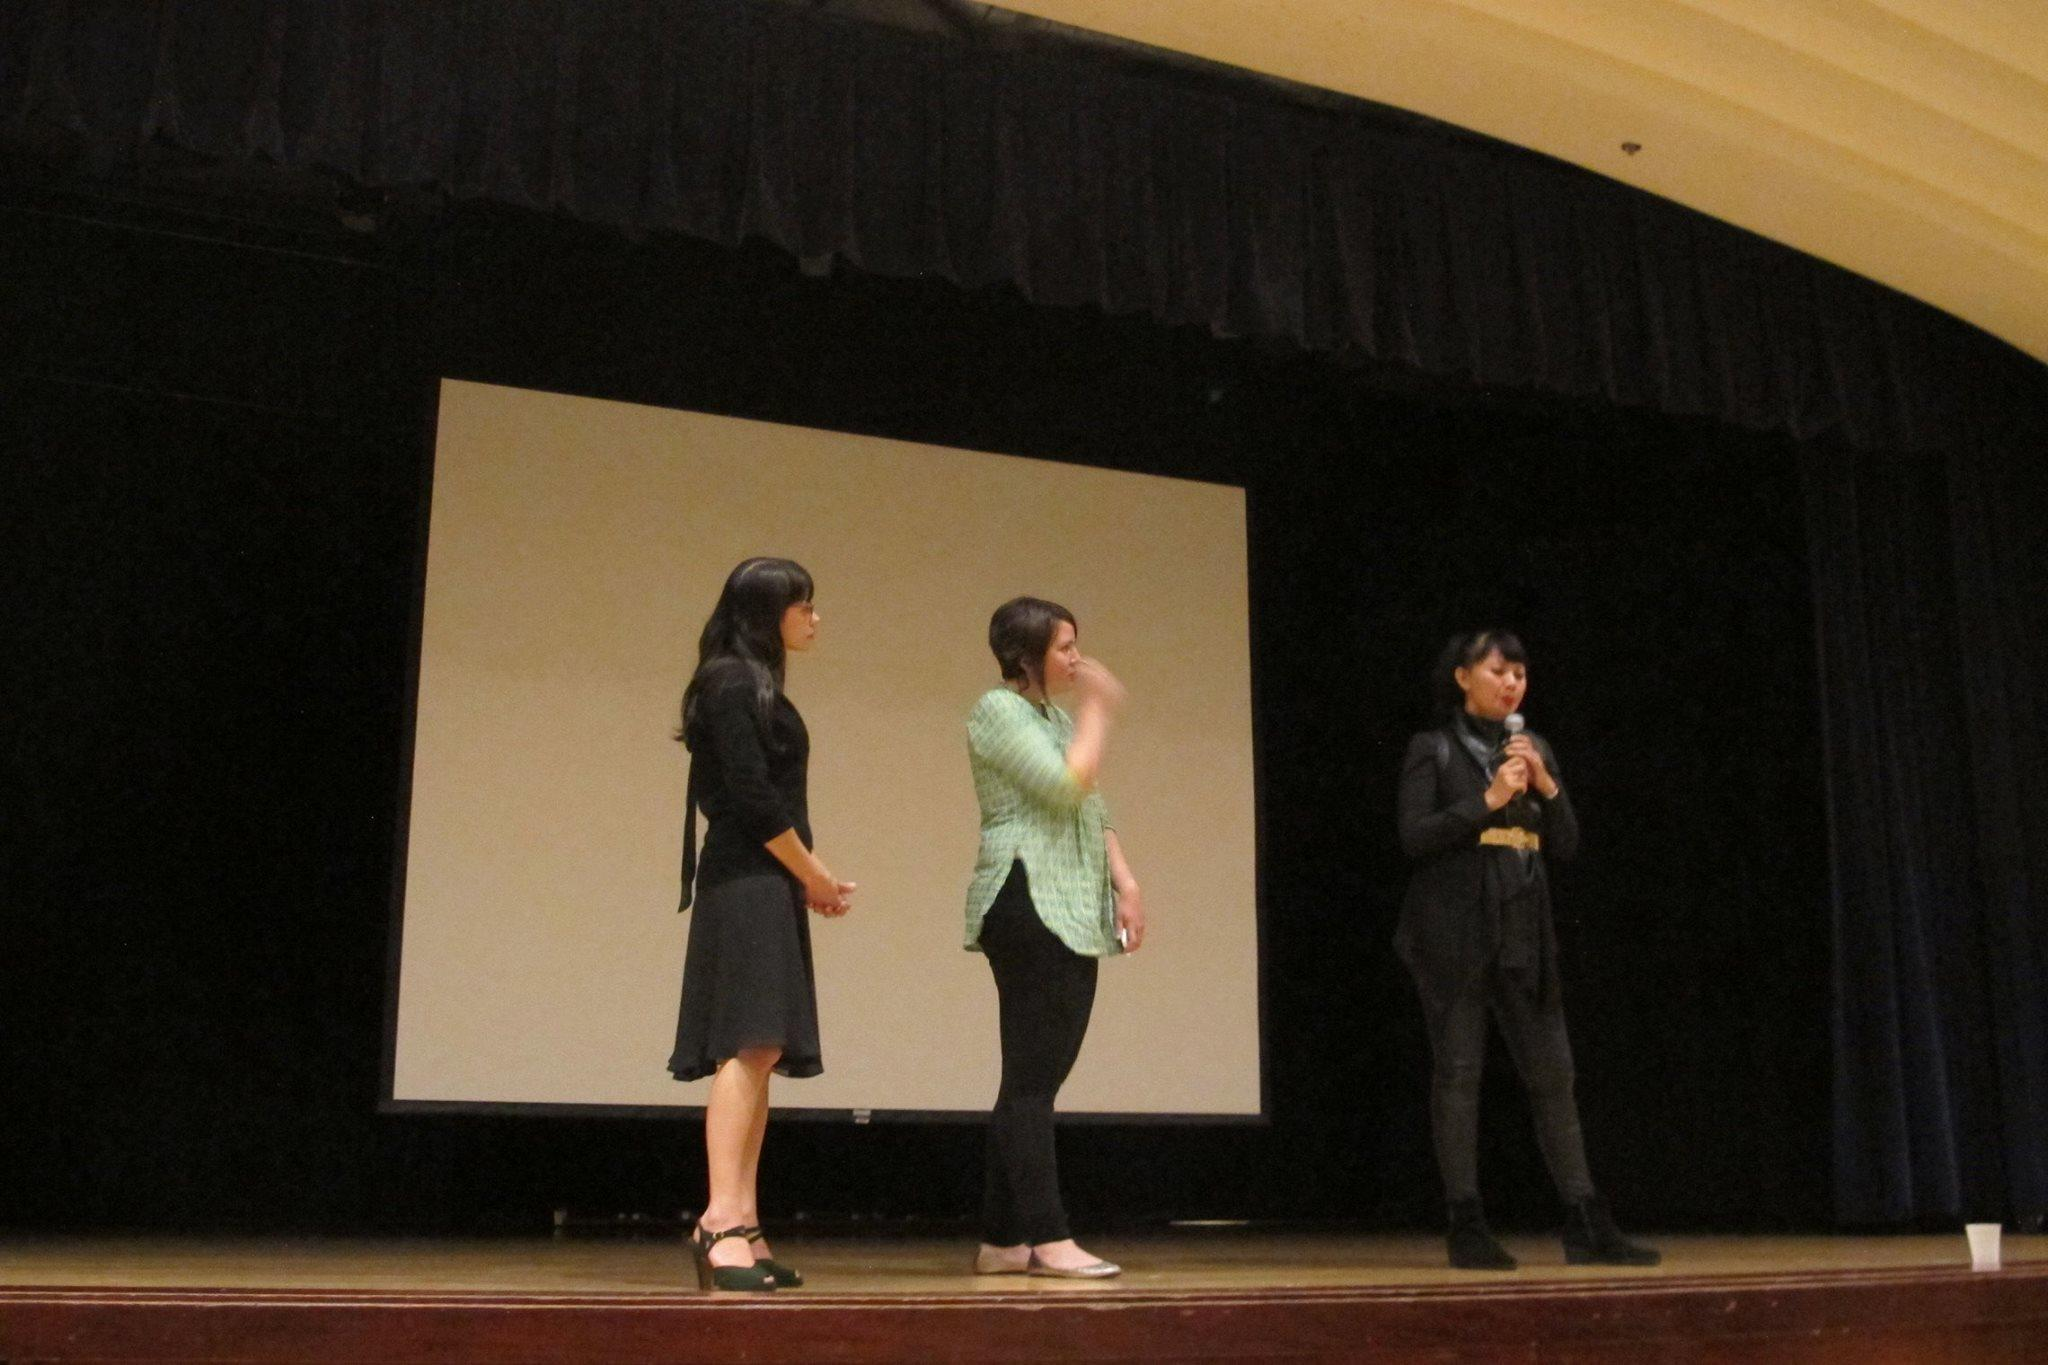 Julie Thi Underhill, Ina Adele Ray, and Doan Hoang